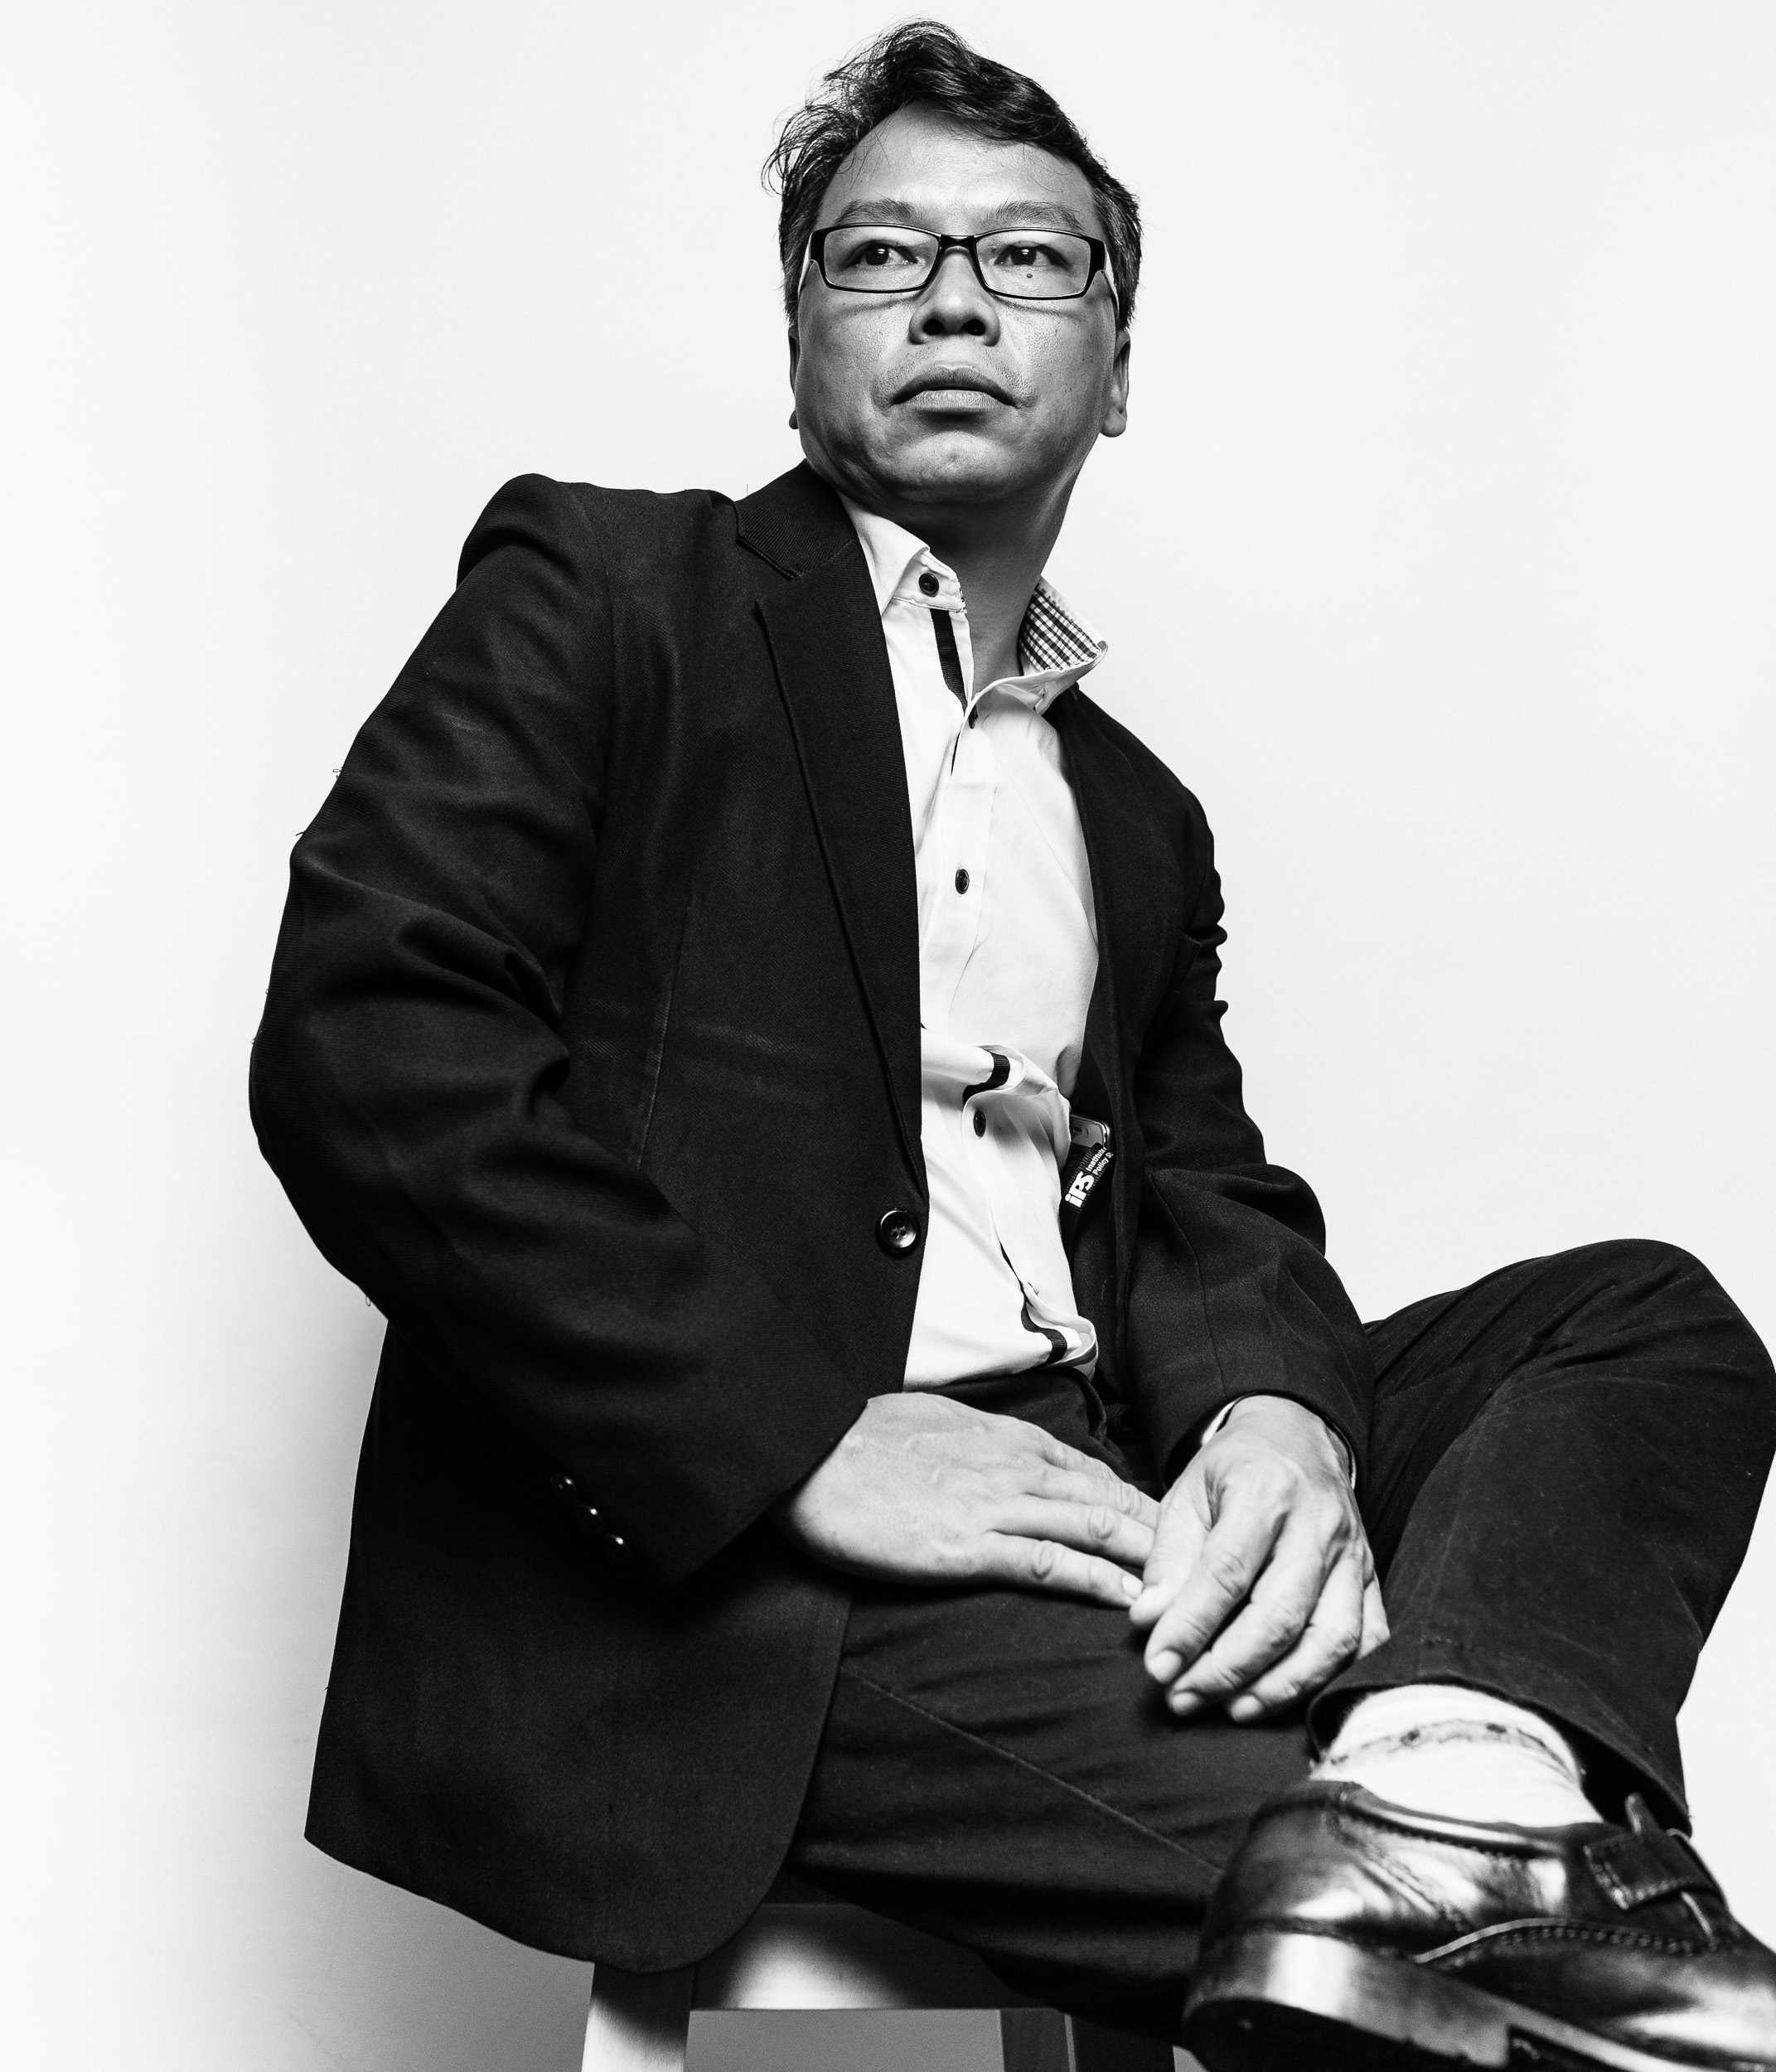 singapore-commercial-editorial-photographer-journalism-asia-ajf-17.jpg